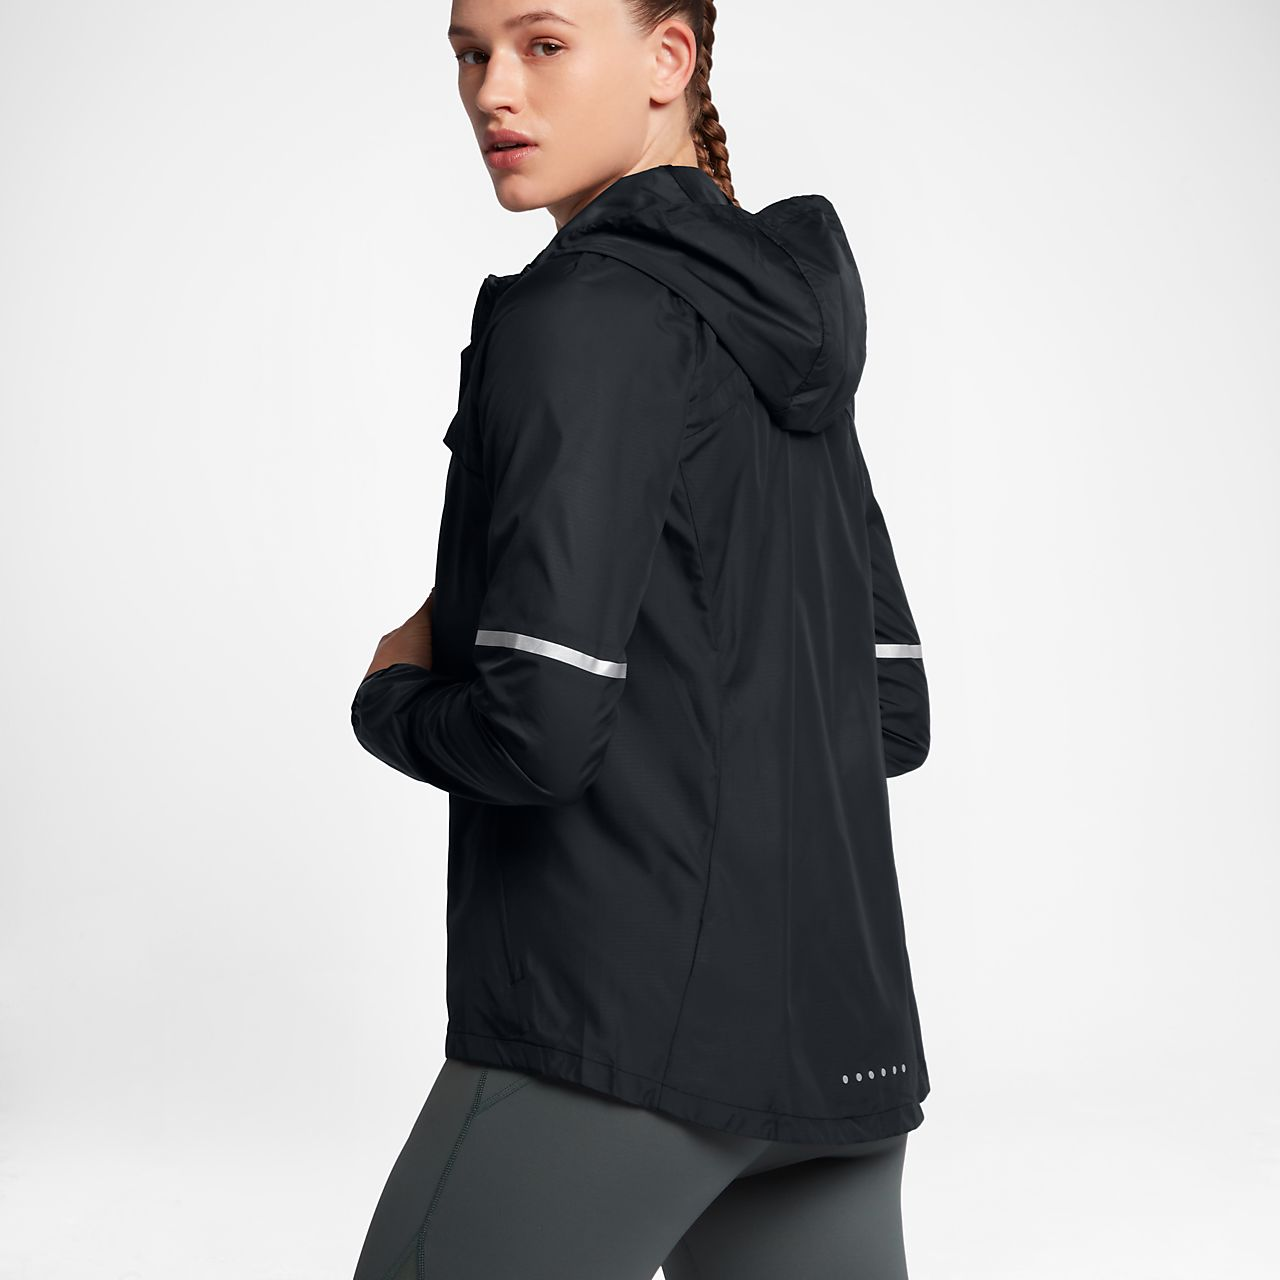 a286d6eaa793 Nike Shield Women s Running Jacket. Nike.com GB